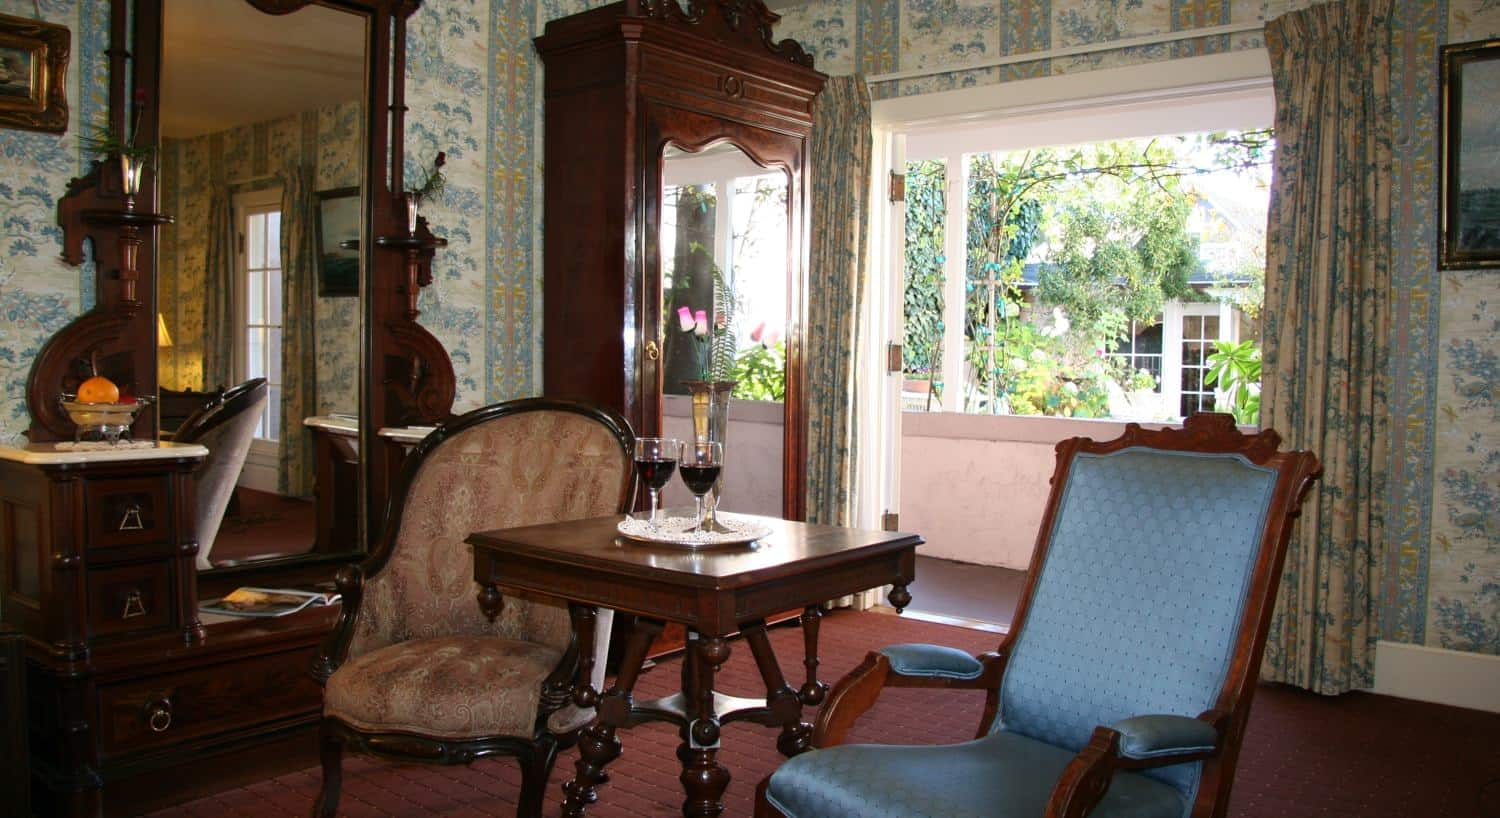 Captains guest room, carpeting, large window, papered walls, floral curtains, vanity with mirror, armoire with mirror, two chairs, square table